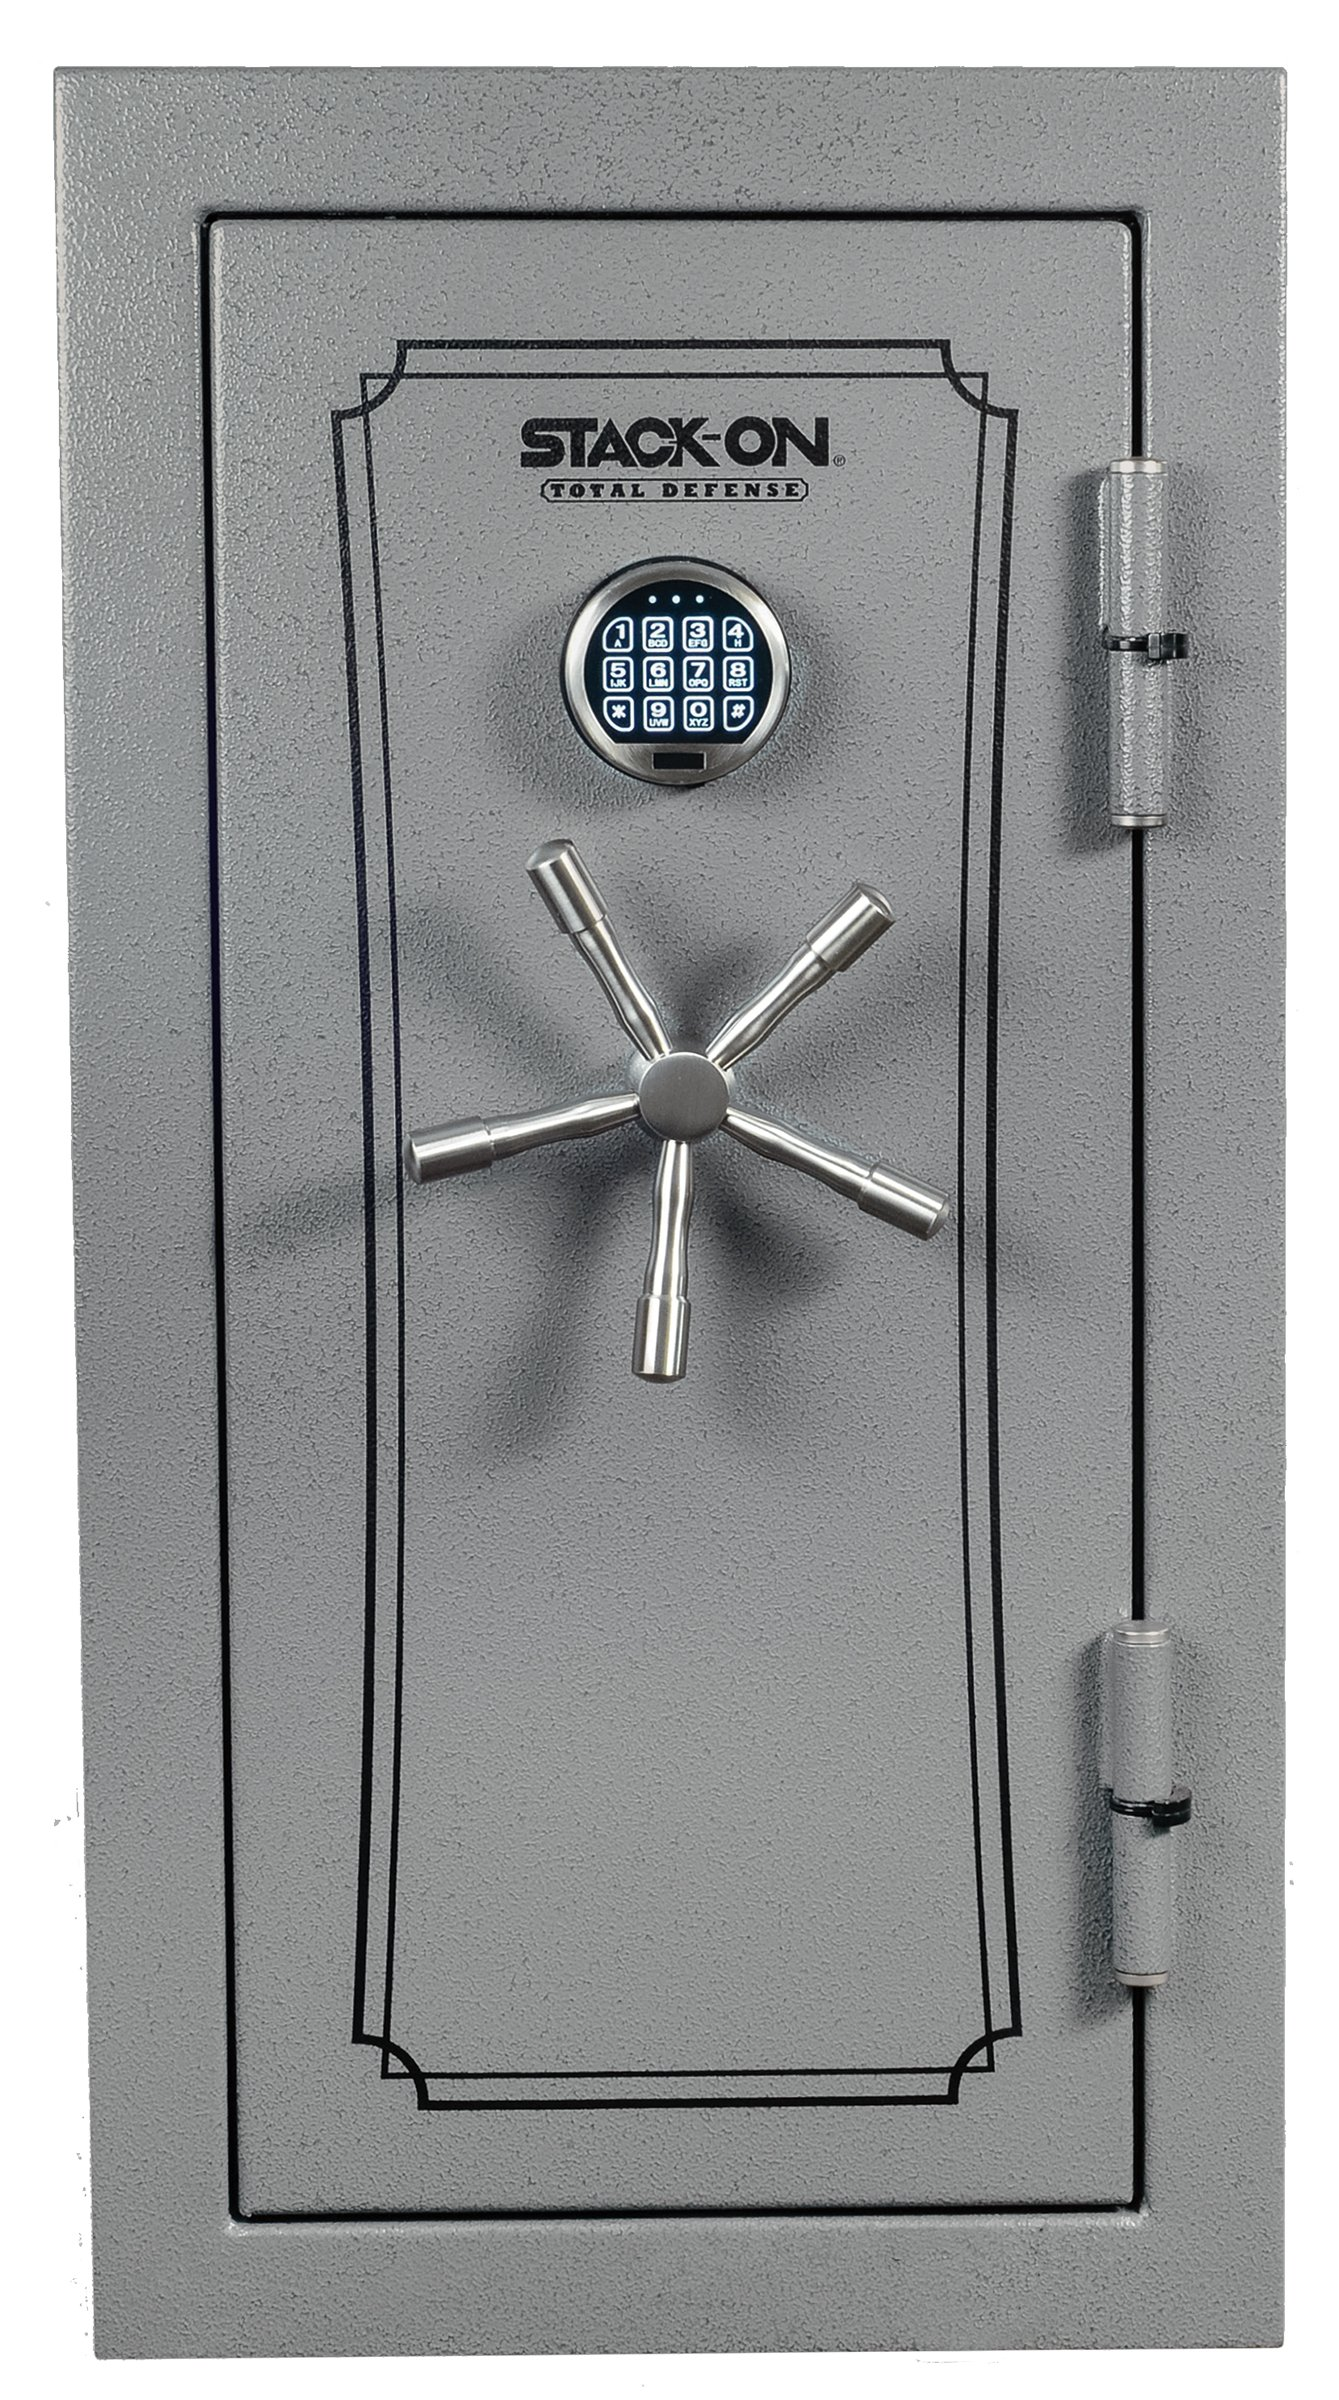 Stack-On TD-040-GP-E Total Defense Executive Safe with Electronic Lock, Gray Pebble by Stack-On